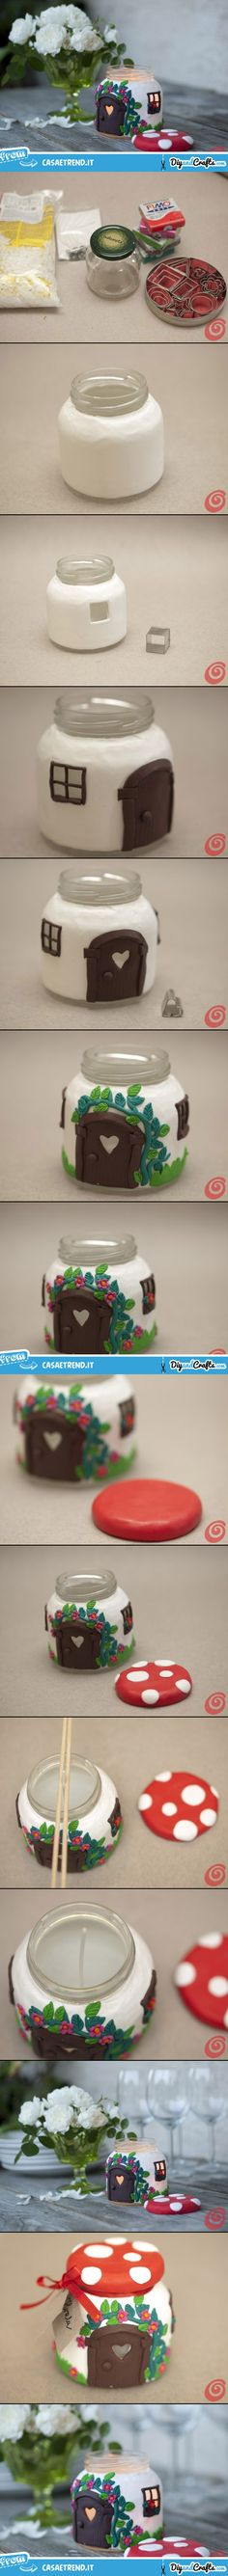 Glass Jar Mushroom – candle House | DIY | DIY Crafts Club